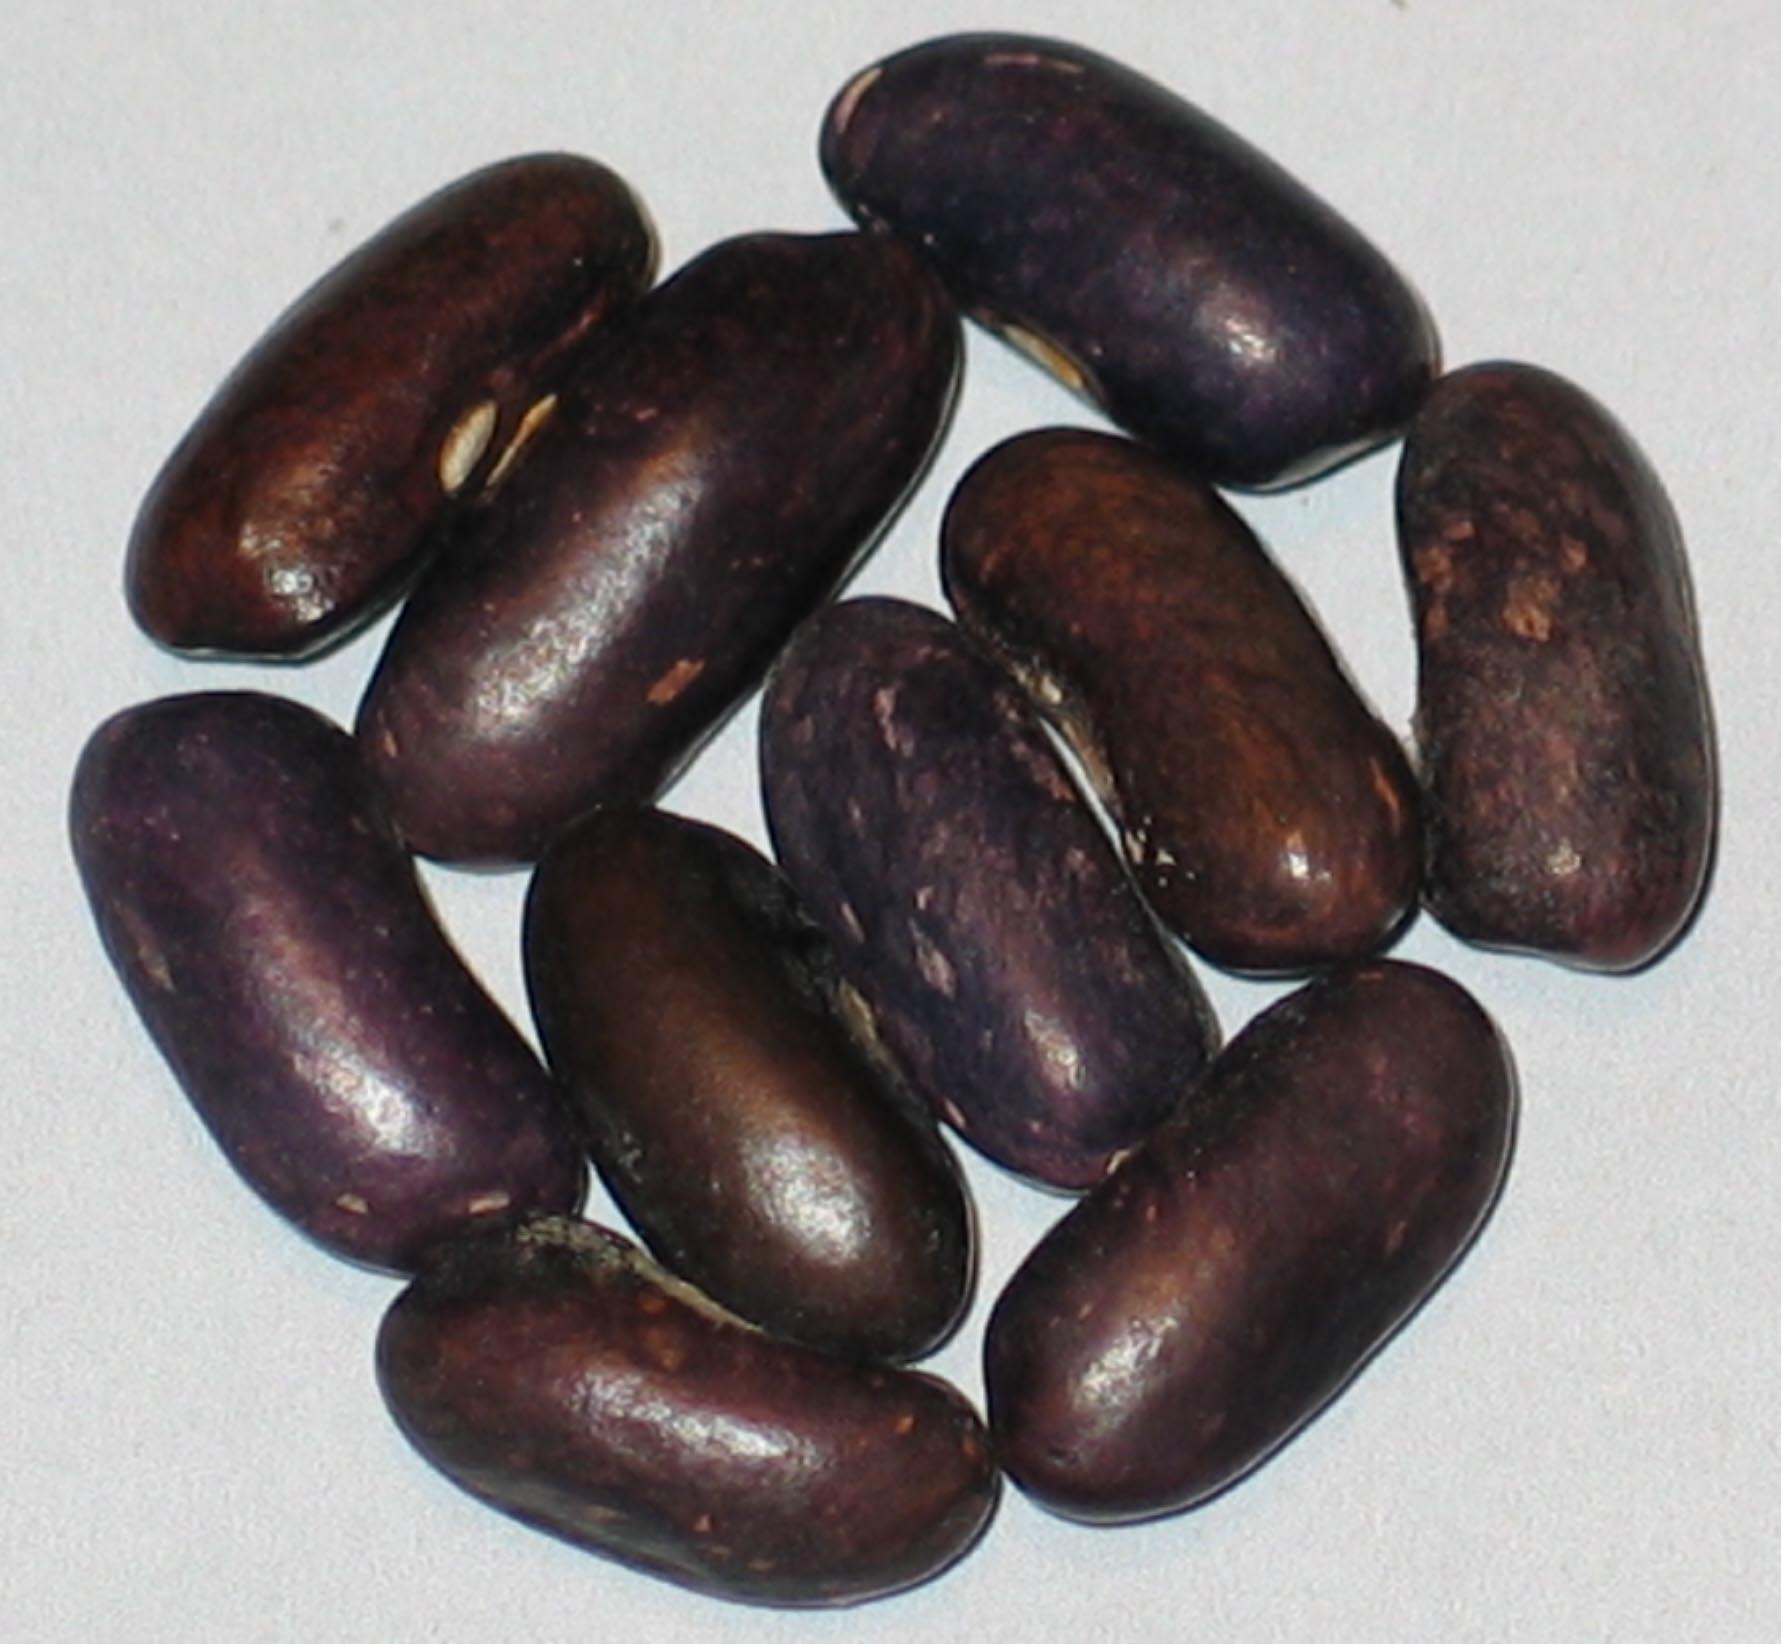 image of Paula Snap beans